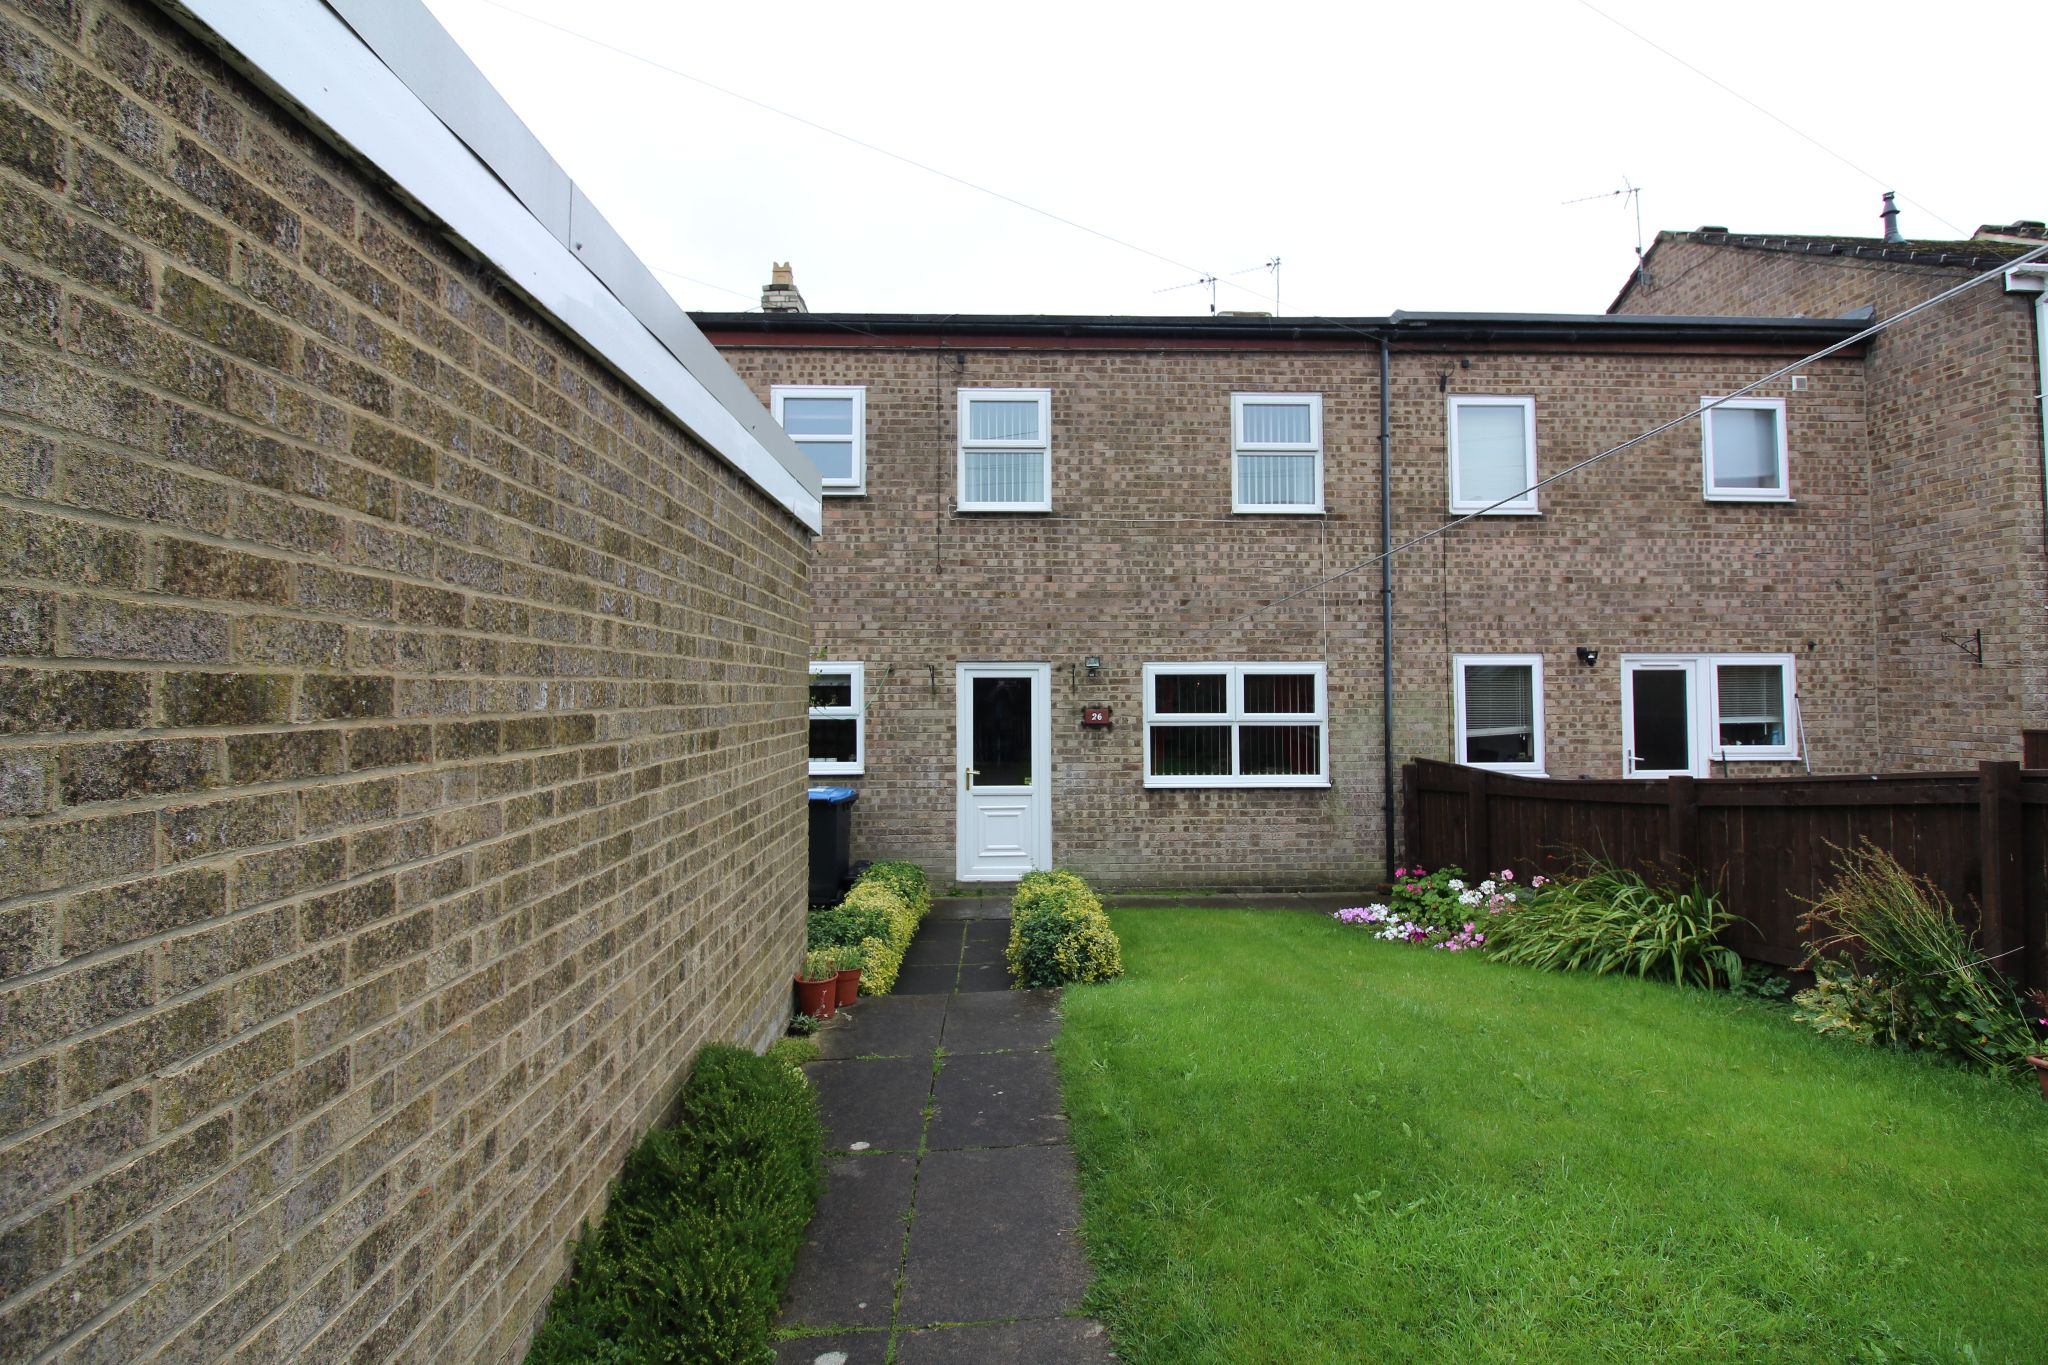 3 bedroom mid terraced house For Sale in Willington And Hunwick - View to rear of house.